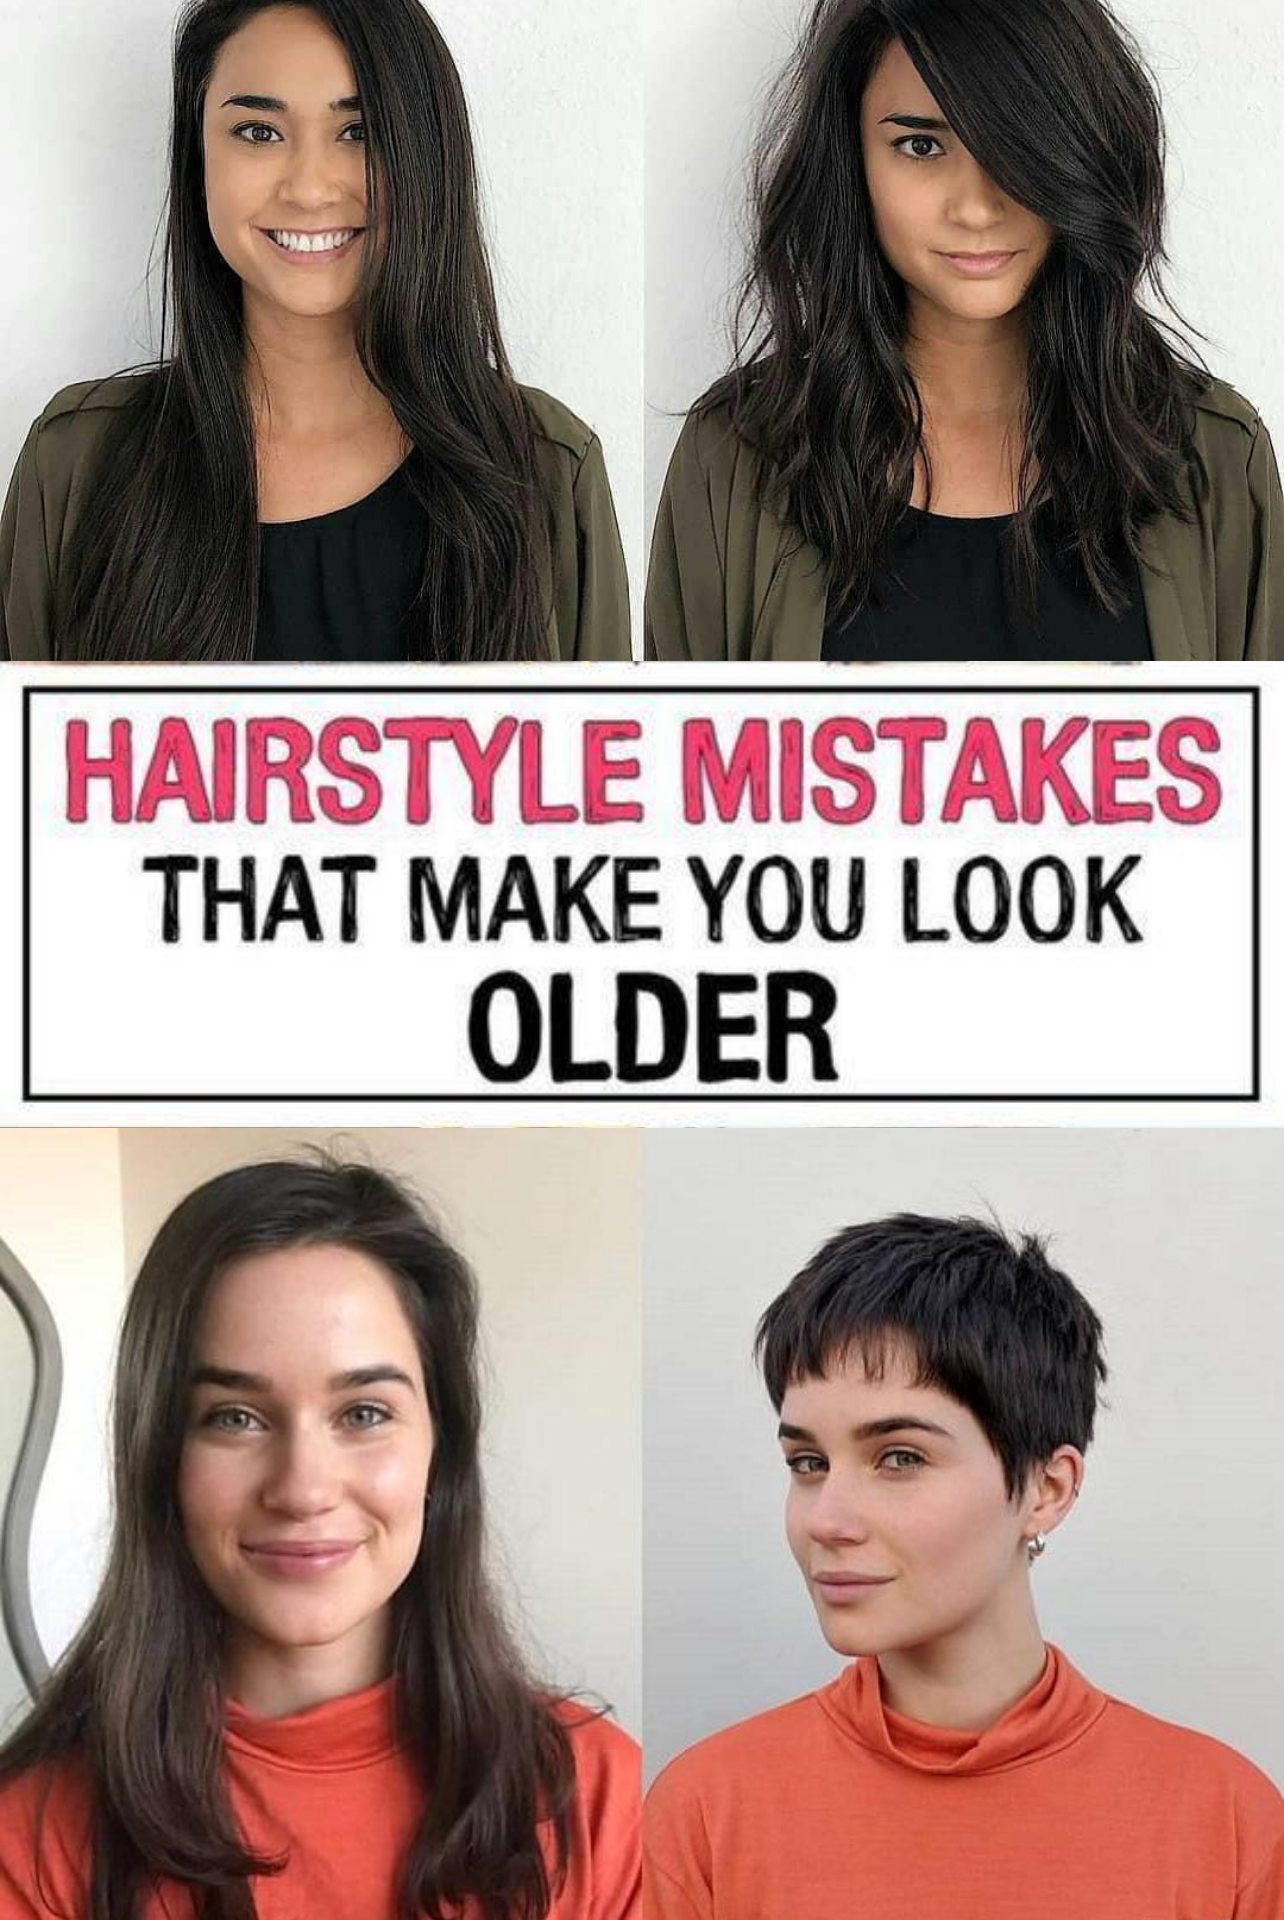 37 Hairstyle Mistakes That Are Aging You In 2020 Mom Hairstyles Hair Advice Hair Mistakes